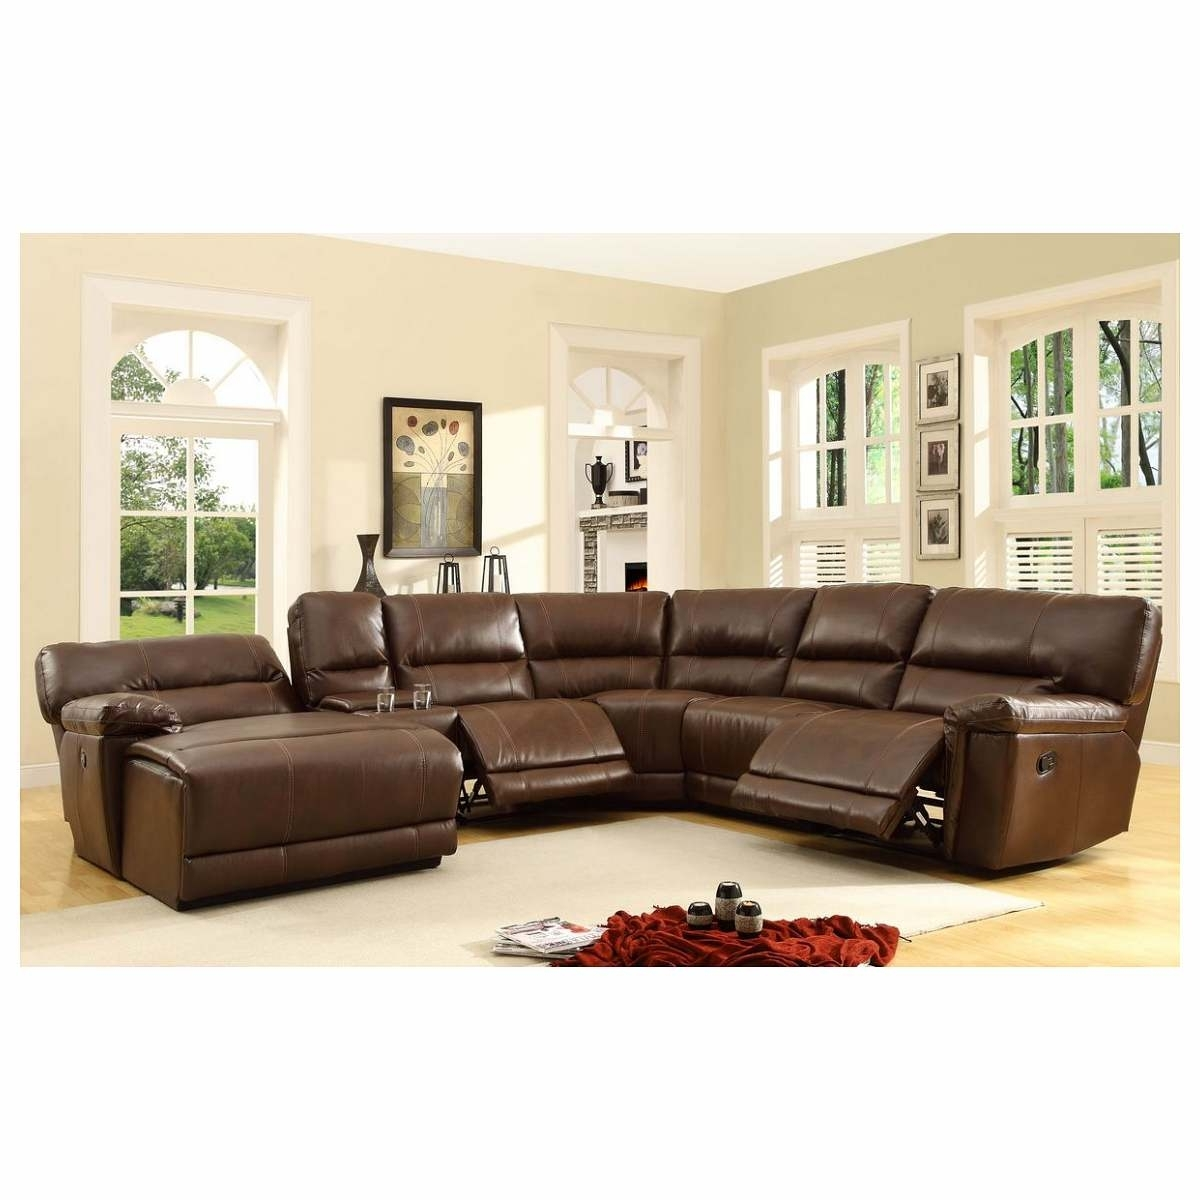 Sectional Sofas At Bad Boy In Favorite 6 Pc Blythe Collection Brown Bonded Leather Match Upholstered (View 15 of 20)